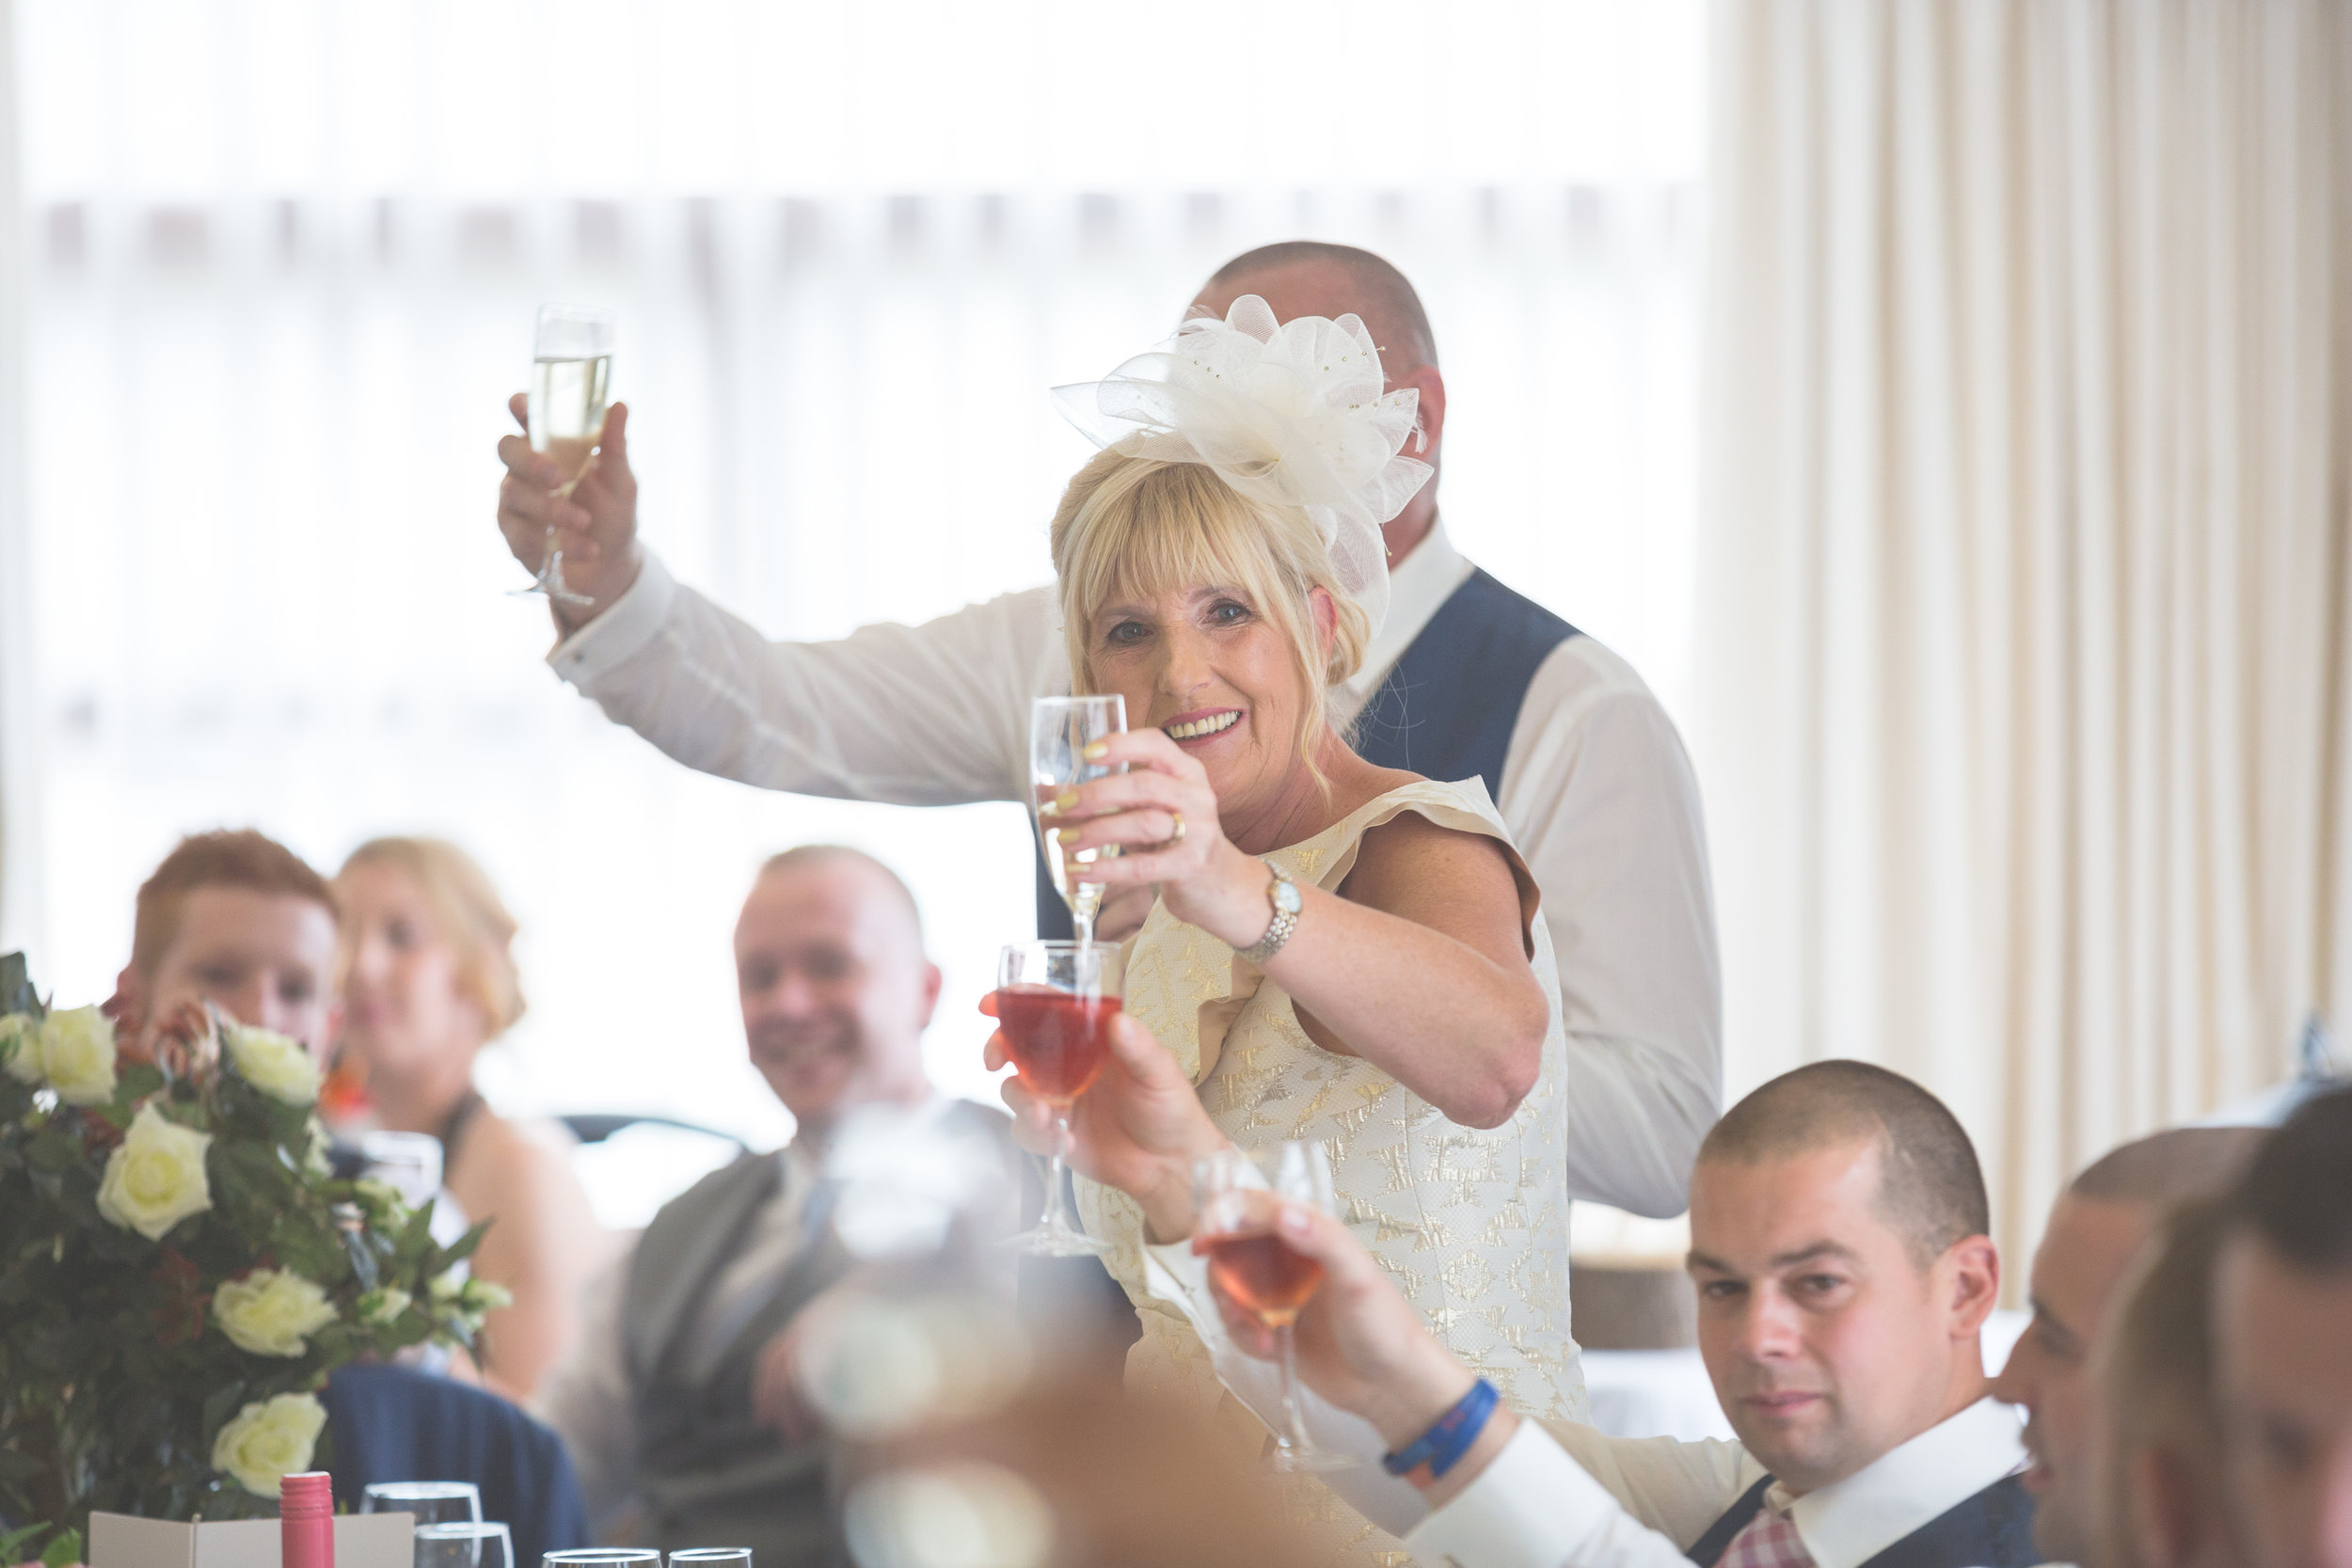 Antoinette & Stephen - Speeches | Brian McEwan Photography | Wedding Photographer Northern Ireland 51.jpg